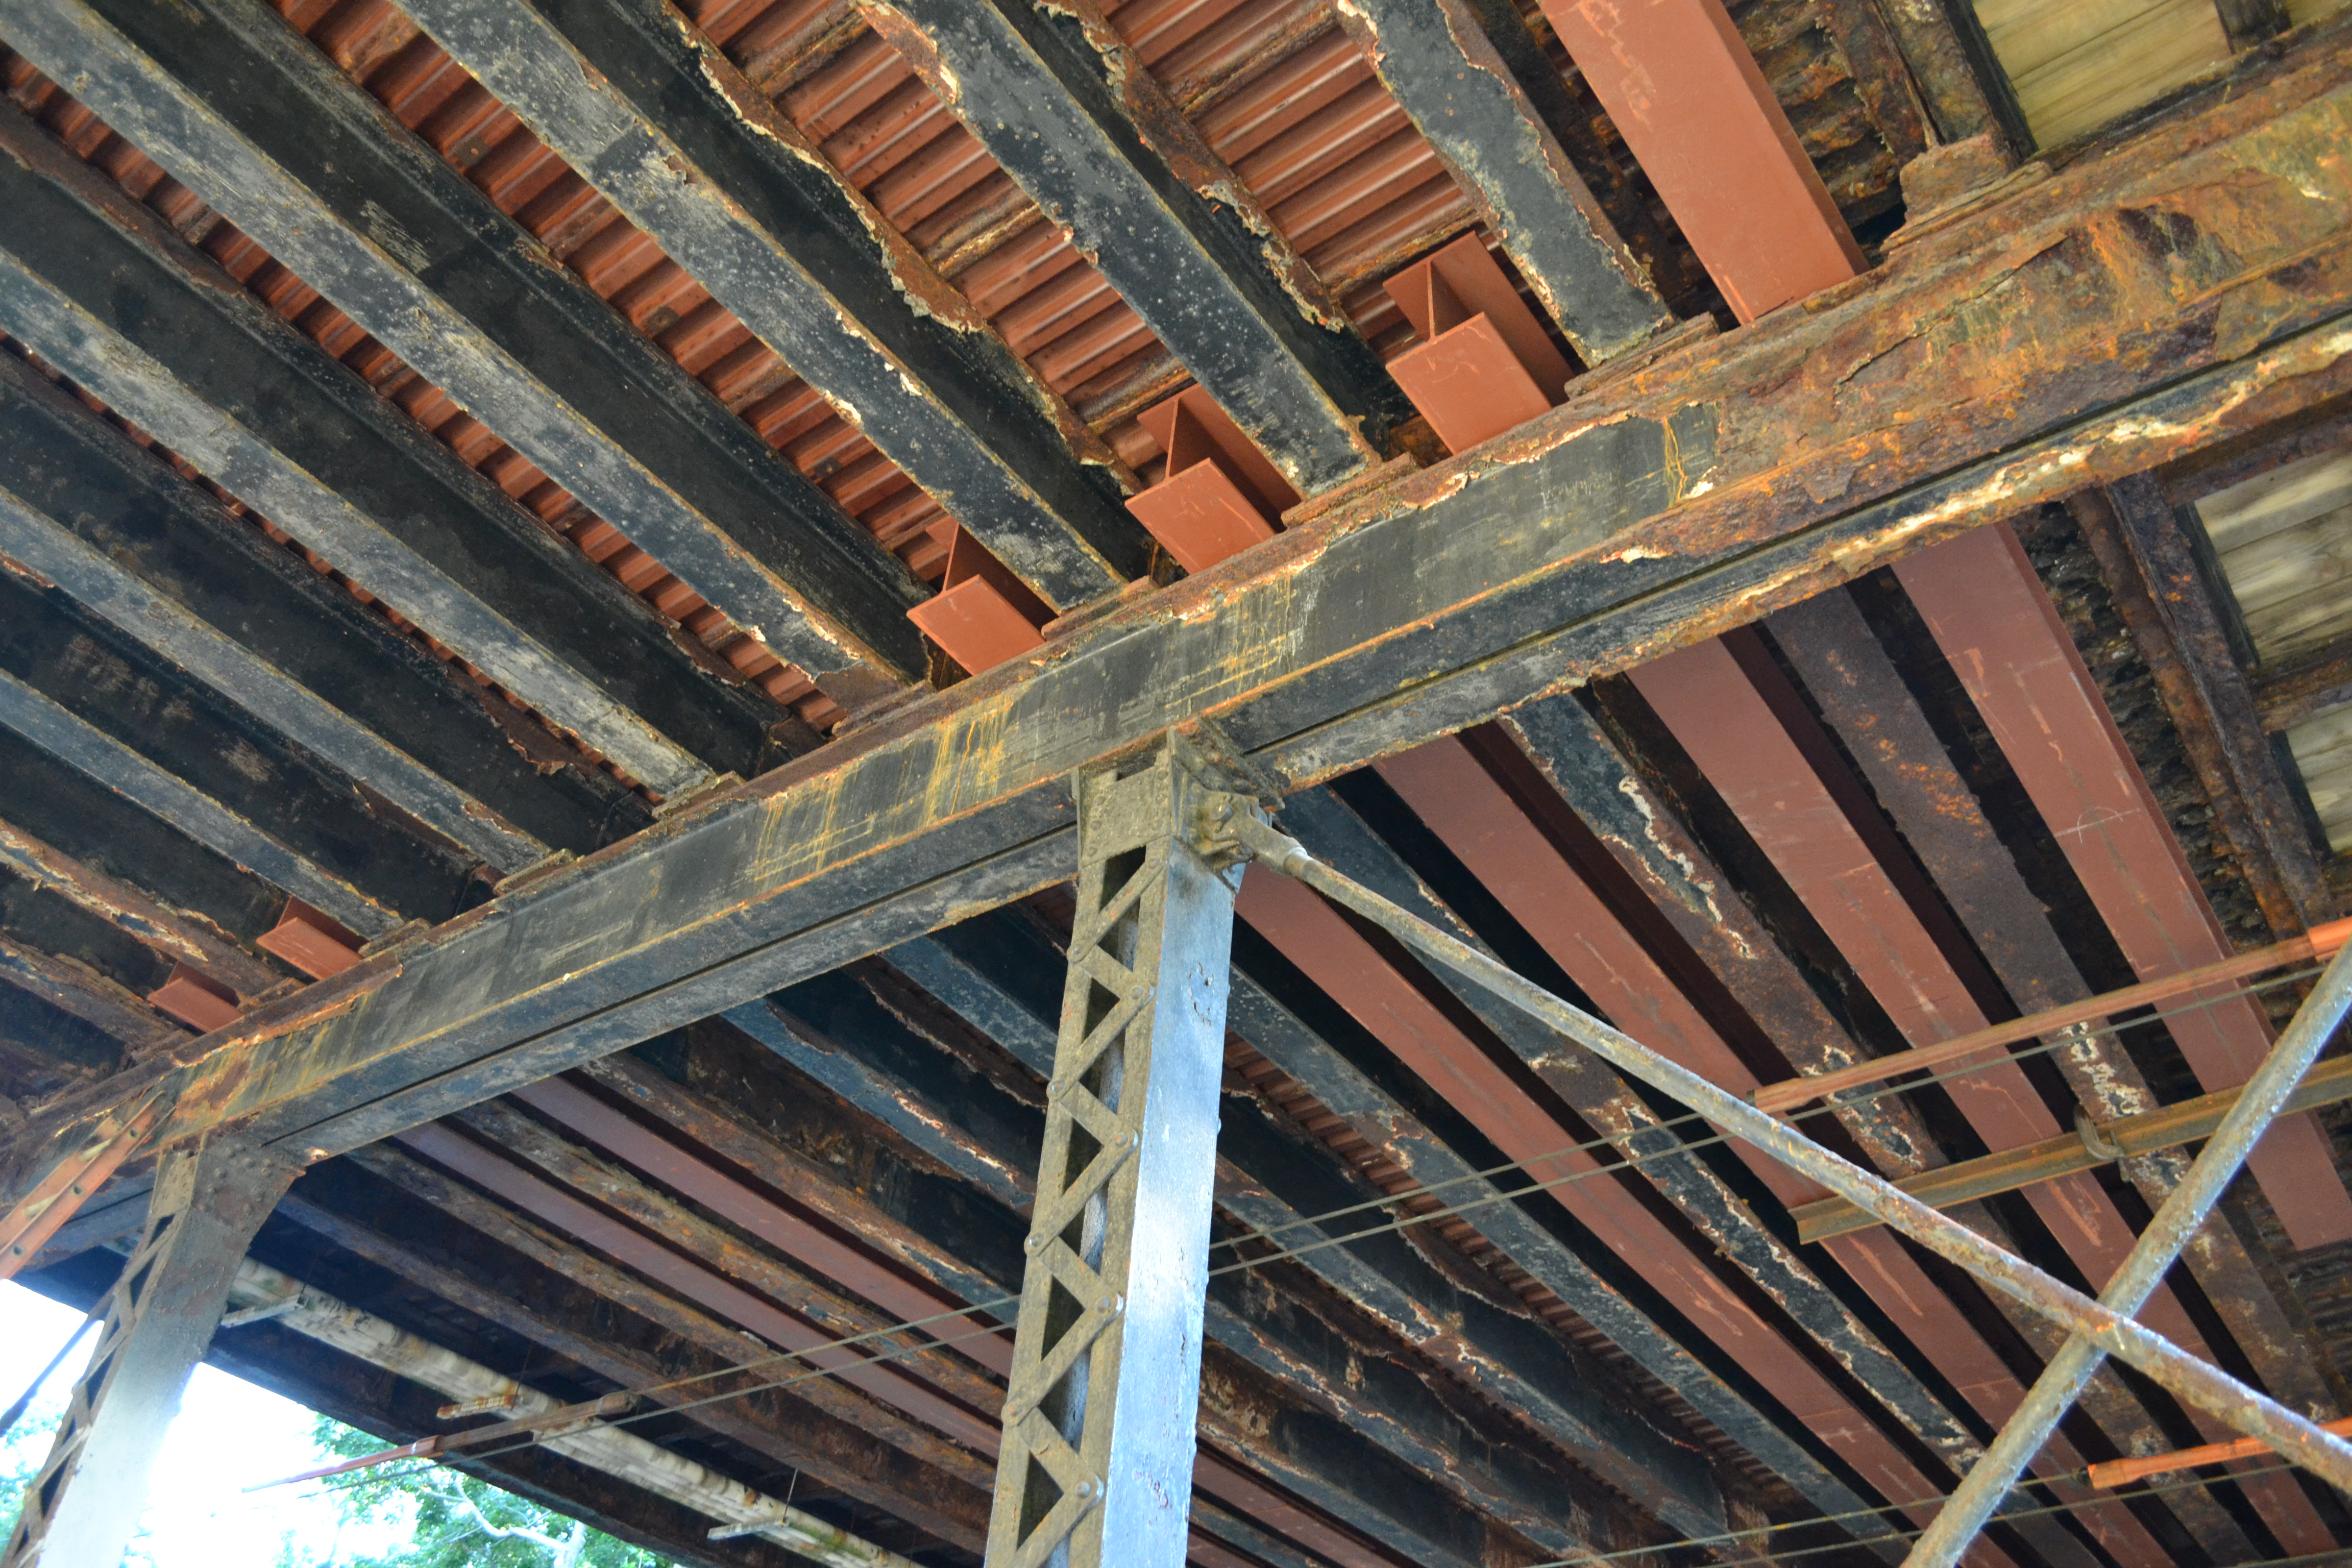 The new beams fit between and reinforce the old, corroded beams